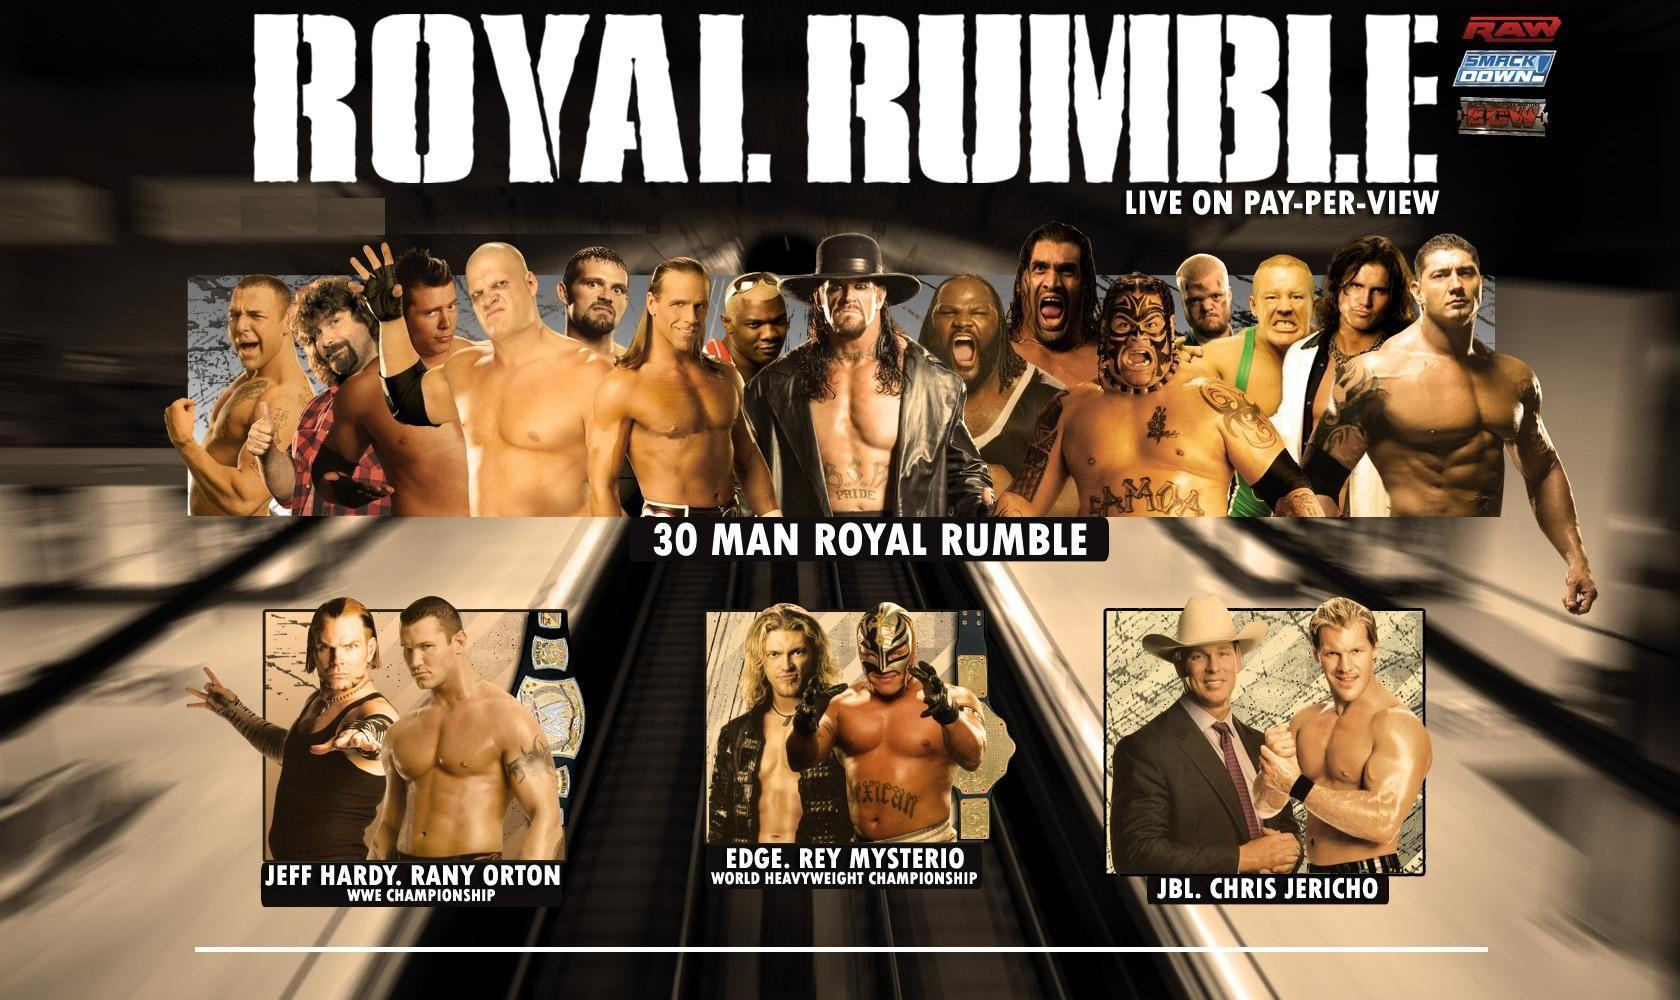 Wallpaper of Royal Rumble - WWE Superstars, WWE Wallpapers, WWE PPV's